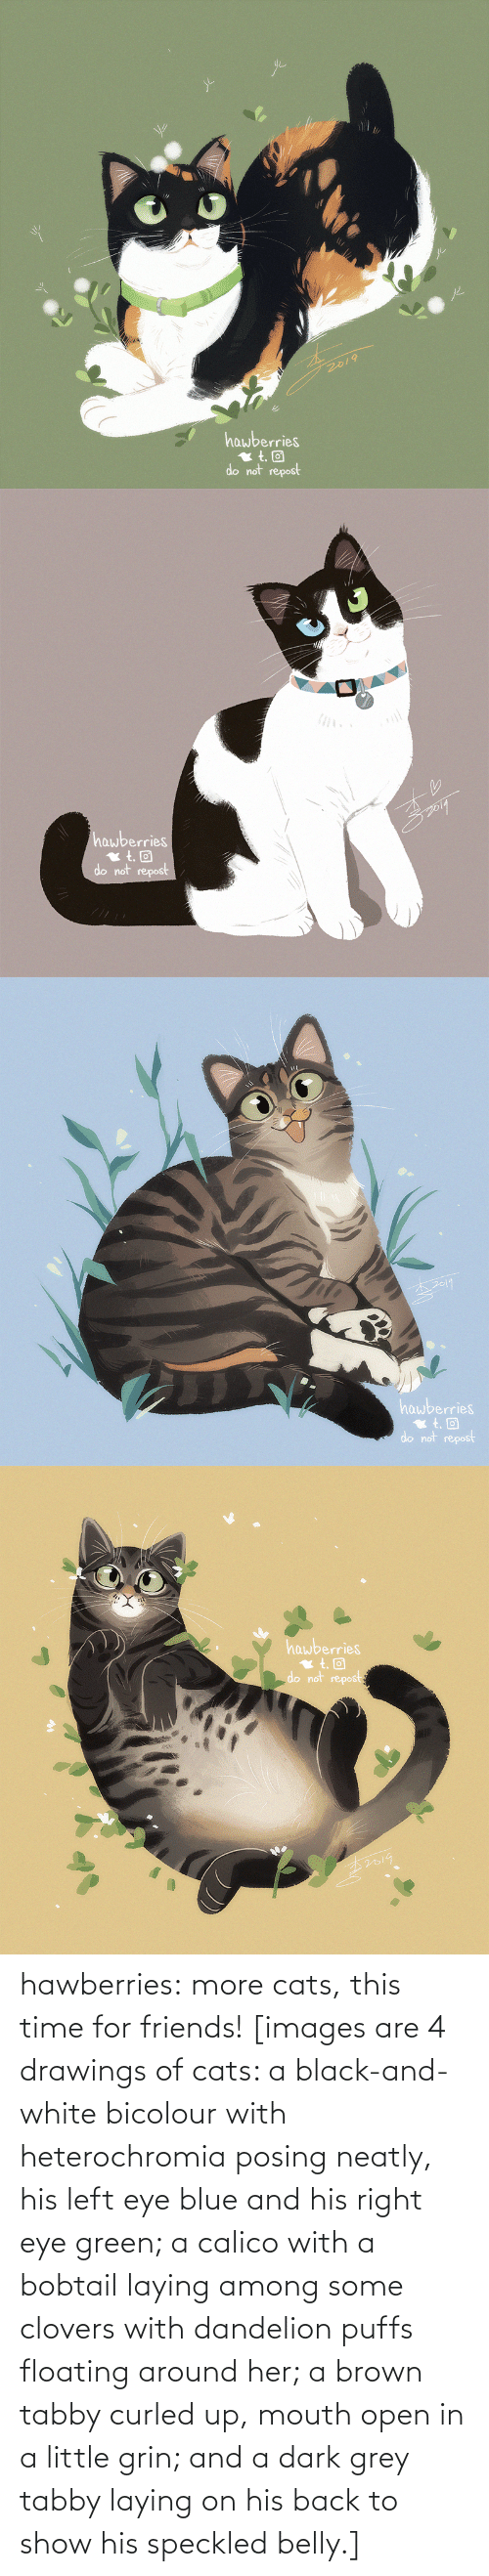 Cats, Friends, and Target: 2019  hawberries  do not repost   hawberries  do not repost   hawberries  do not repost   hawberries  do not repost hawberries: more cats, this time for friends! [images are 4 drawings of cats: a black-and-white bicolour with heterochromia posing neatly, his left eye blue and his right eye green; a calico with a bobtail laying among some clovers with dandelion puffs floating around her; a brown tabby curled up, mouth open in a little grin; and a dark grey tabby laying on his back to show his speckled belly.]